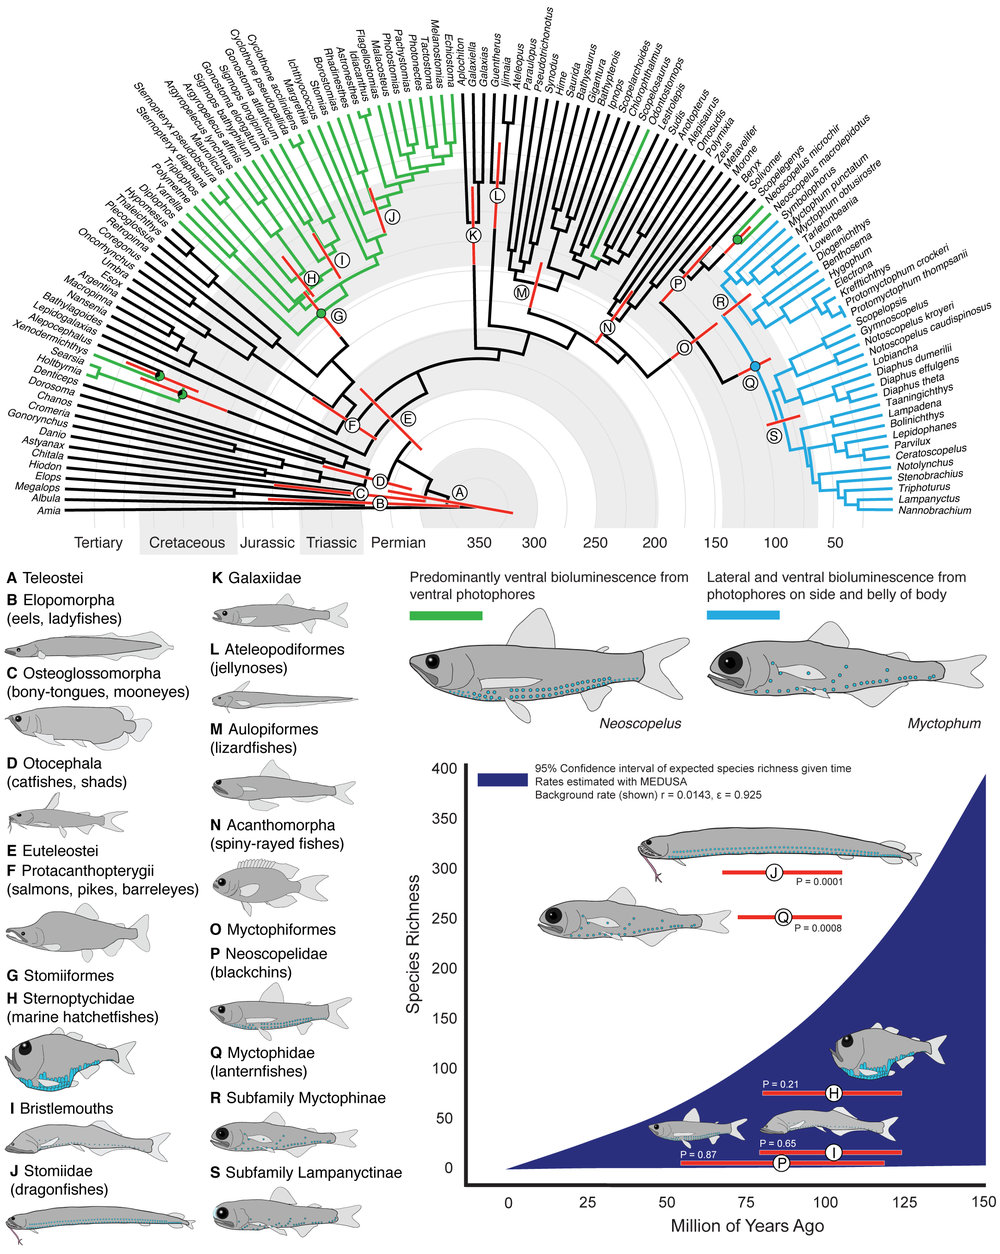 Bioluminescence impacts Diversification in Deep-sea Fishes - 18.    Davis, M.P., Holcroft, N.I., Wiley, E.O., Sparks, J.S., and Smith, W.L. (2014). Species-Specific Bioluminescence Facilitates Speciation in the Deep Sea. Marine Biology. DOI: 10.1007/s00227-014-2406-x.Google Scholar